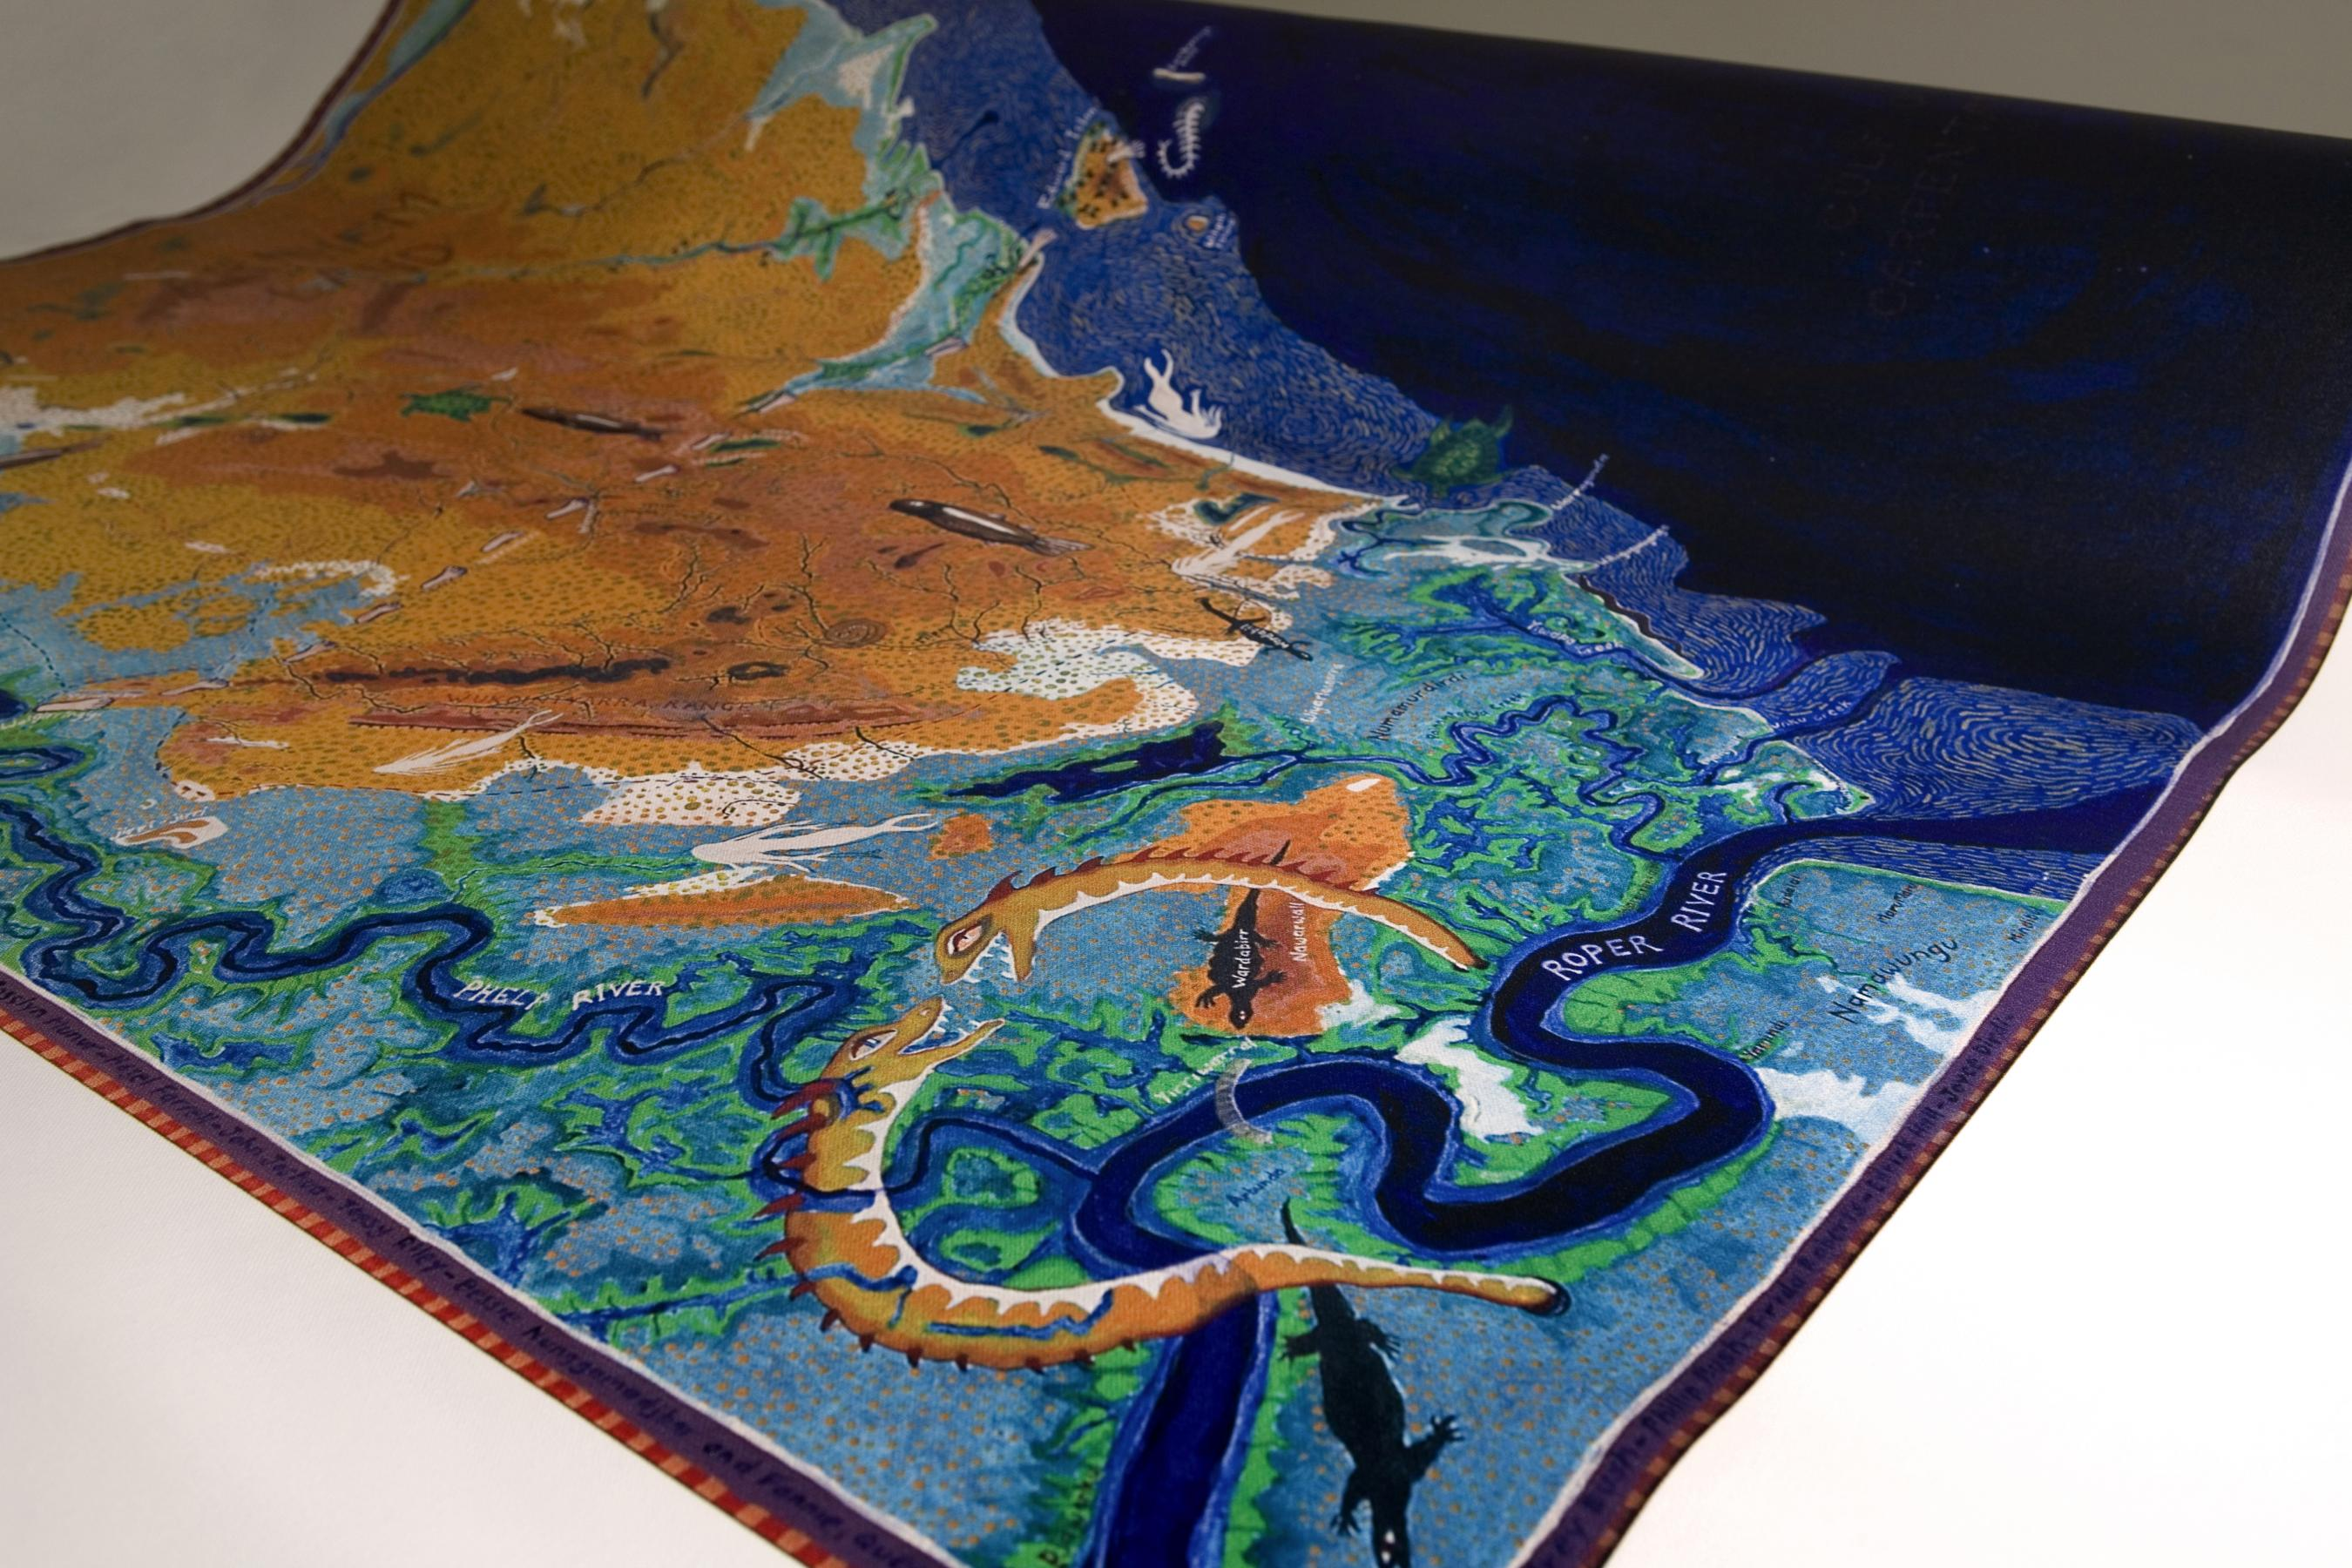 Photo of a digitally painted pictorial map of the Gulf of Carpentaria region